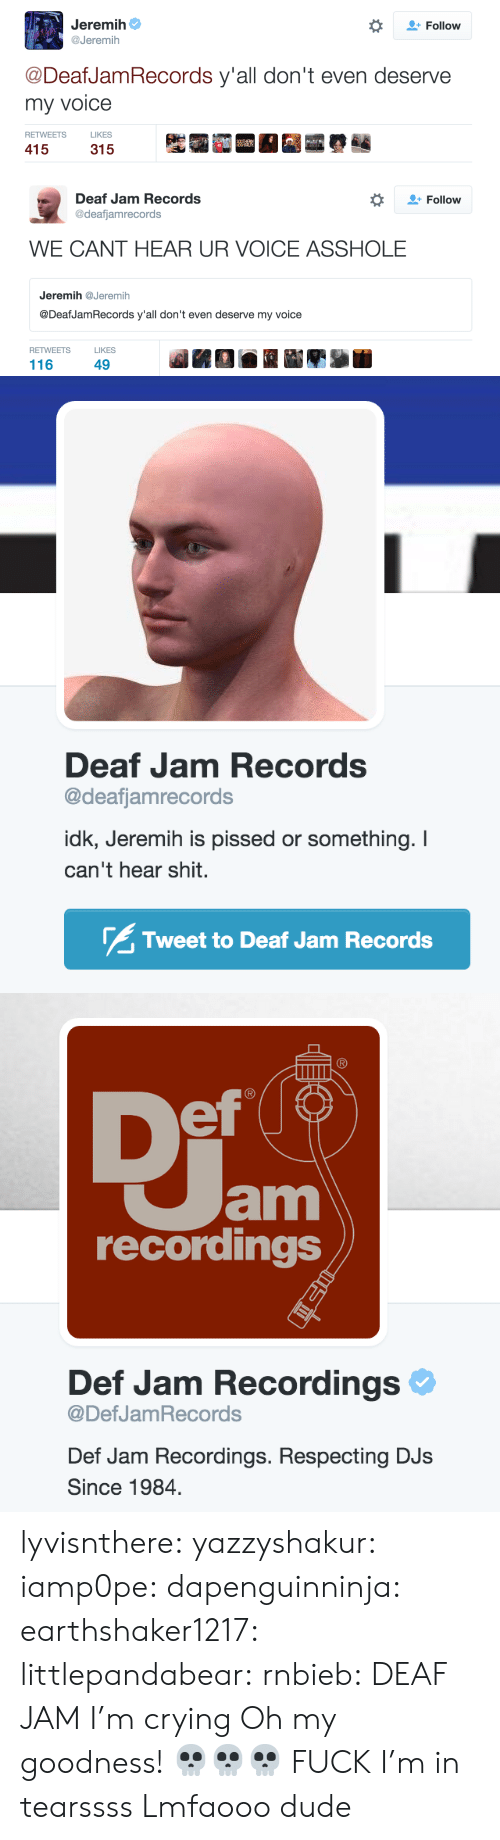 jeremih: Jeremih  @Jeremih  *  Follow  @DeafJamRecords y'all don't even deserve  my voice  RETWEETS  LIKES  415   Follow  Deaf Jam Records  @deafjamrecords  WE CANT HEAR UR VOICE ASSHOLE  Jeremih@Jeremih  @DeafJamRecords y'all don't even deserve my voice  RETWEETS  LIKES  116  49   Deaf Jam Records  @deafjamrecords  idk, Jeremih is pissed or something. I  can't hear shit.  Tweet to Deaf Jam Records   ef  am  recordings  Def Jam Recordings  @DefJamRecords  Def Jam Recordings. Respecting DJs  Since 1984 lyvisnthere:  yazzyshakur:  iamp0pe:  dapenguinninja:  earthshaker1217:  littlepandabear:  rnbieb:  DEAF JAM  I'm crying  Oh my goodness!  💀💀💀  FUCK  I'm in tearssss  Lmfaooo dude